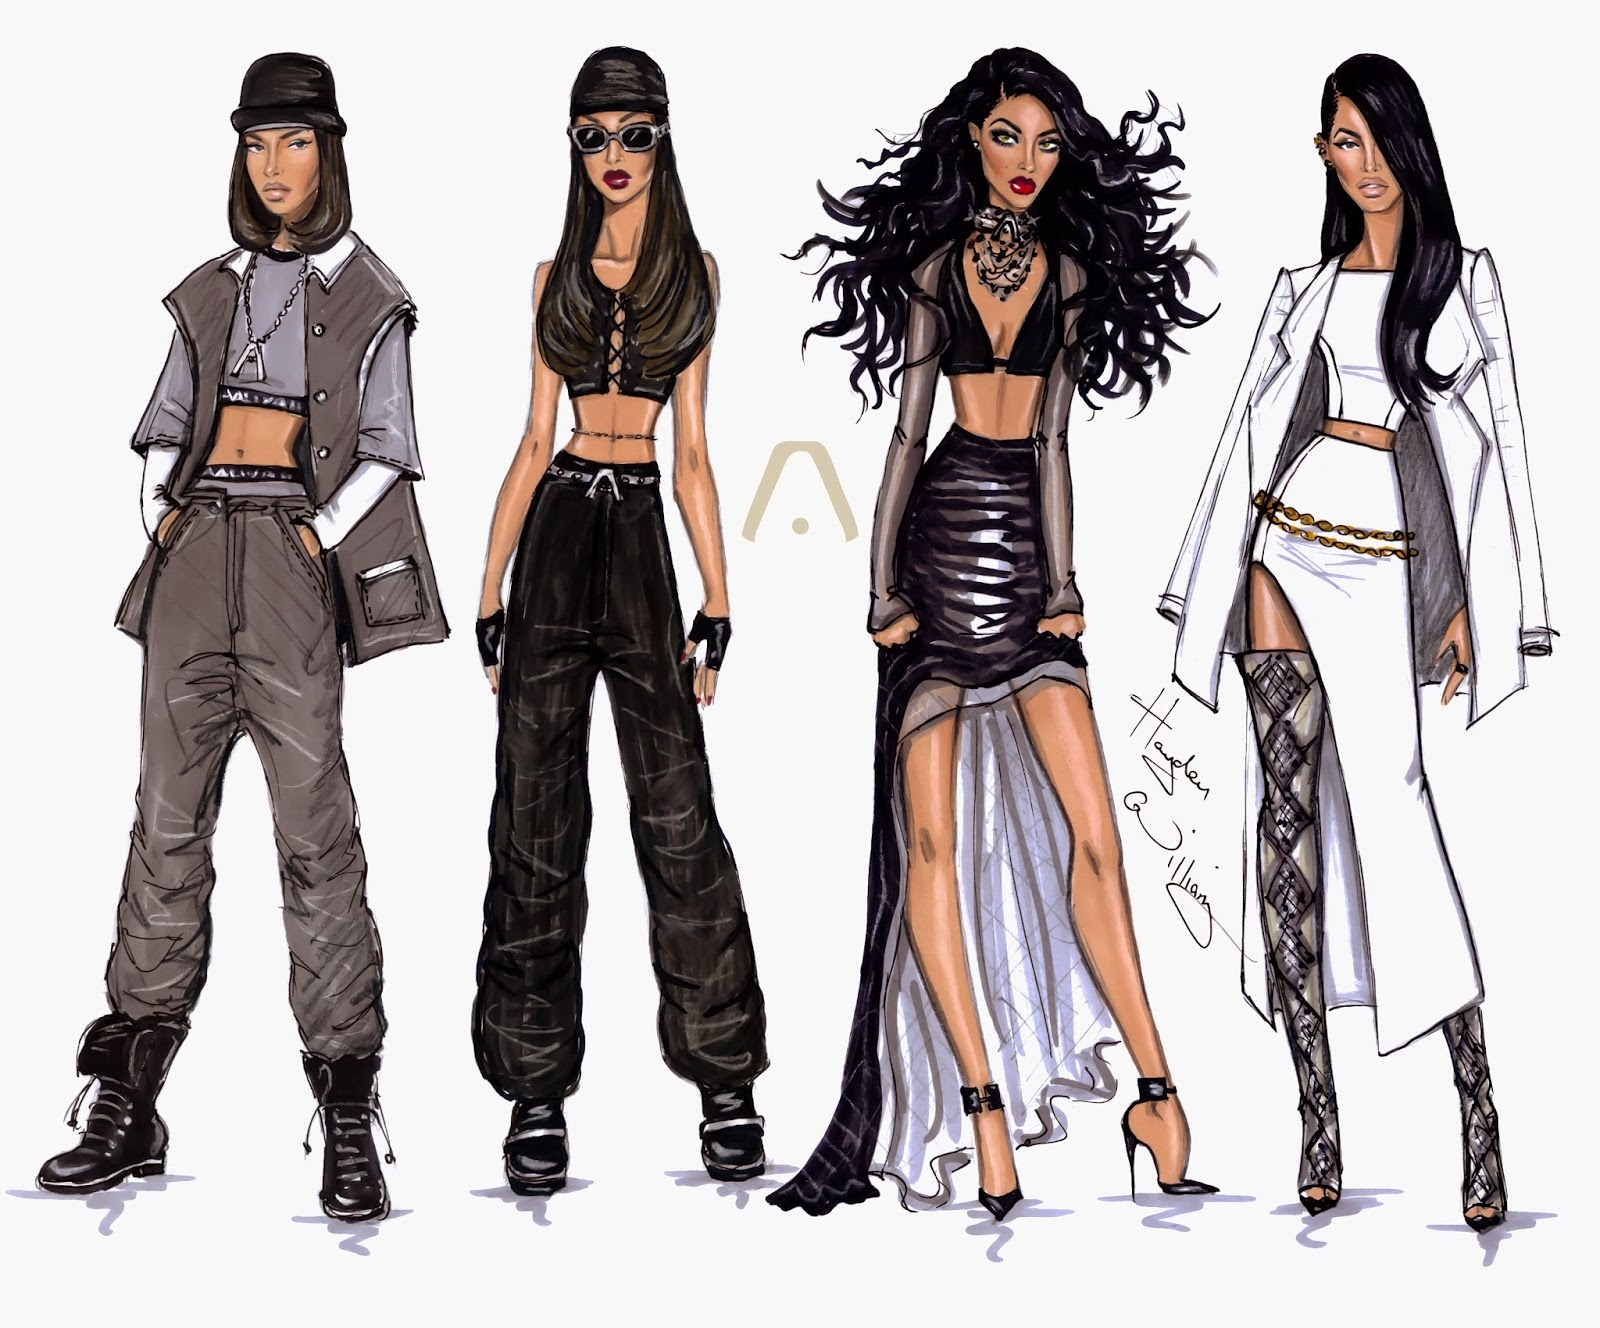 Aaliyah Illustrations By Hayden Williams Aaliyah Archives